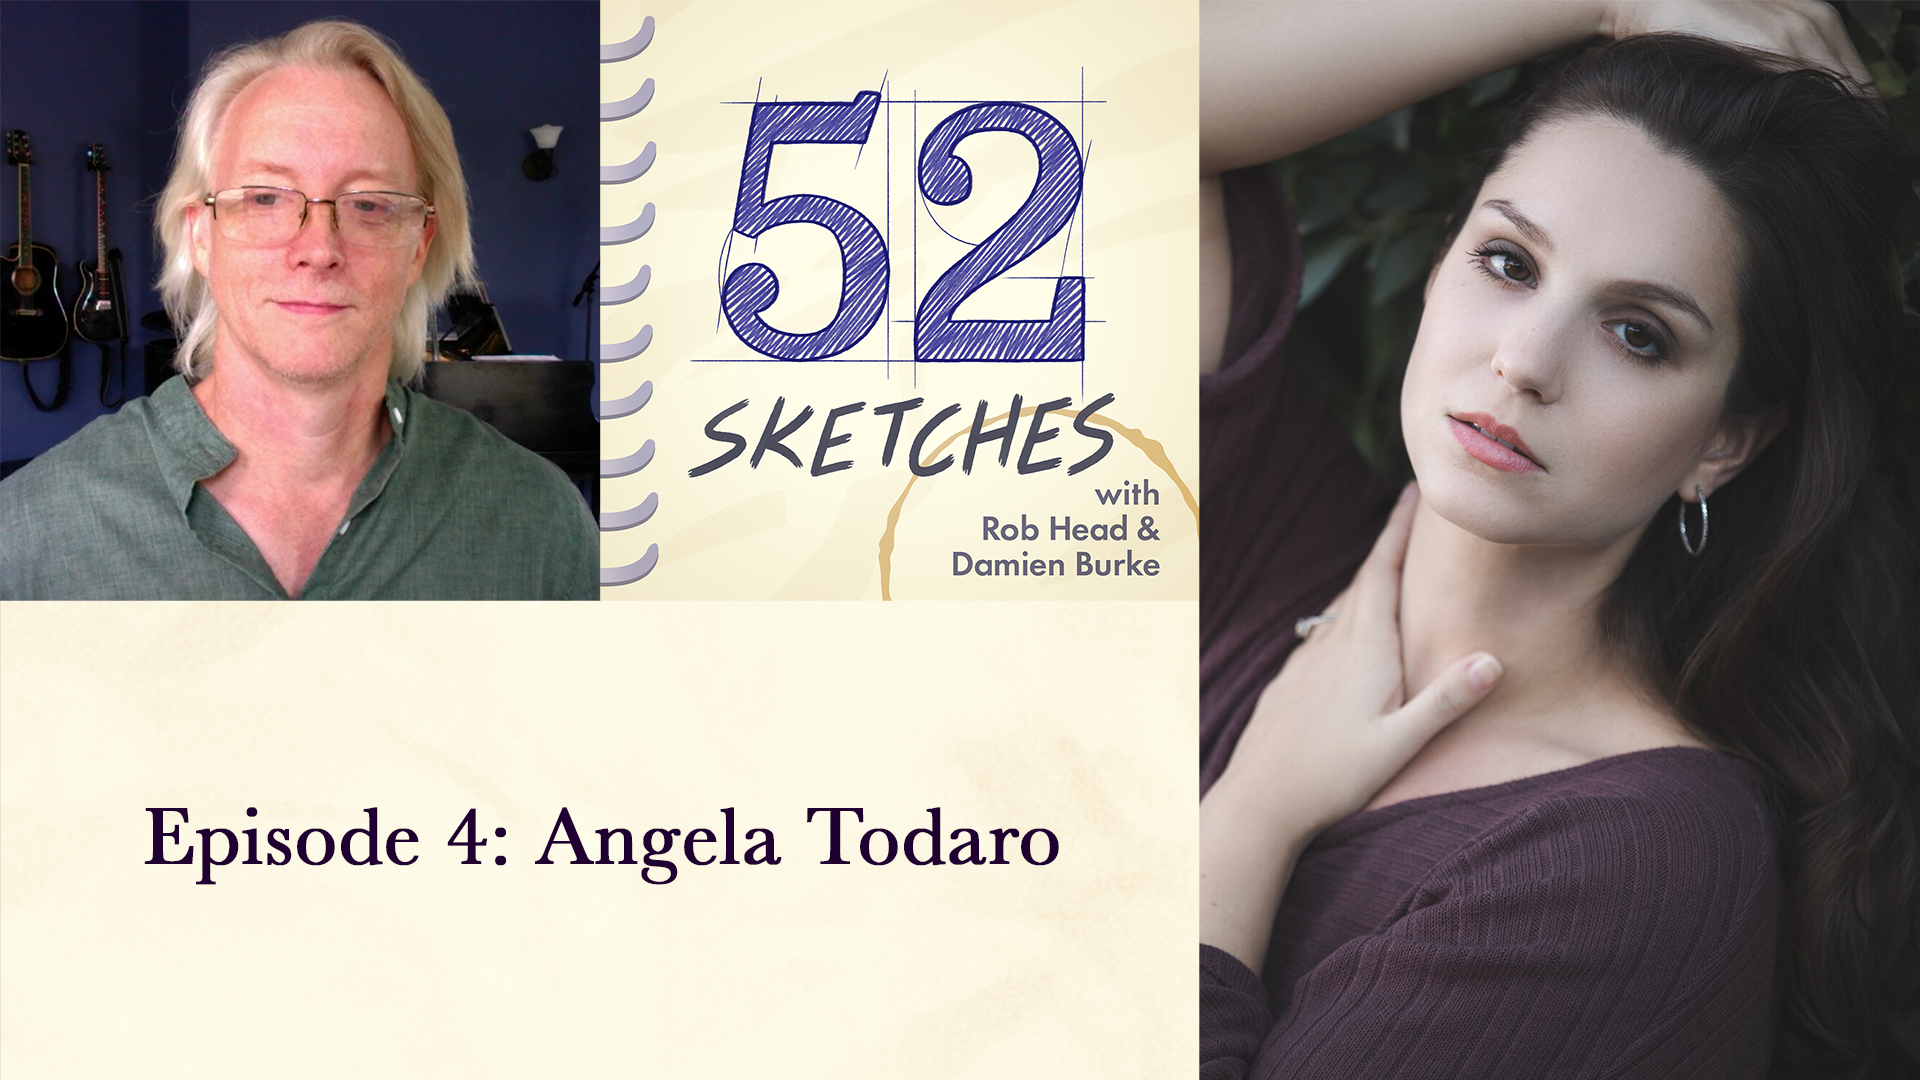 52 Sketches episode 4 — Angela Todaro